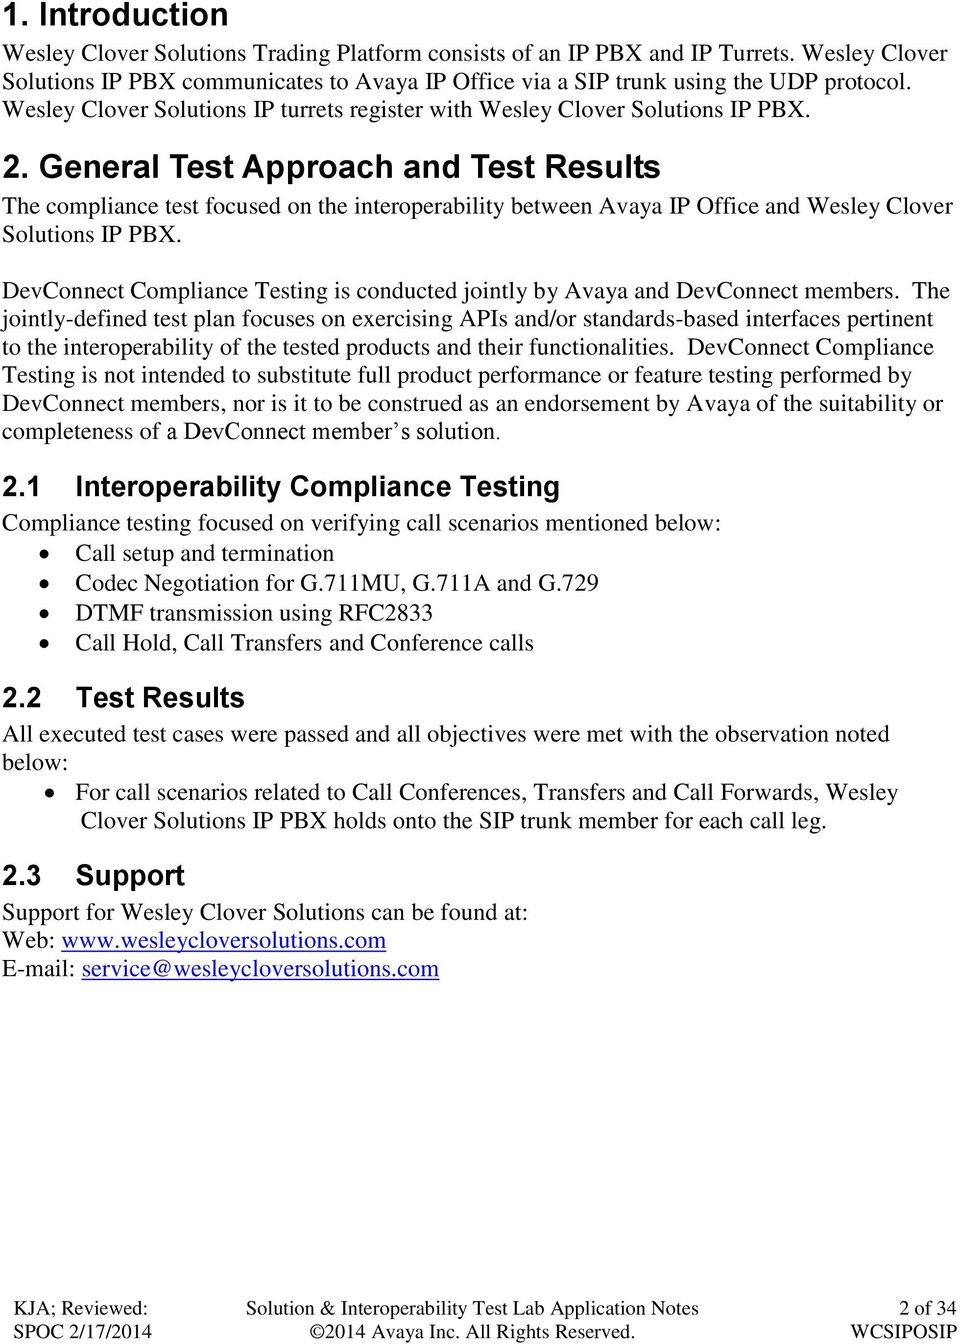 General Test Approach and Test Results The compliance test focused on the interoperability between Avaya IP Office and Wesley Clover Solutions IP PBX.